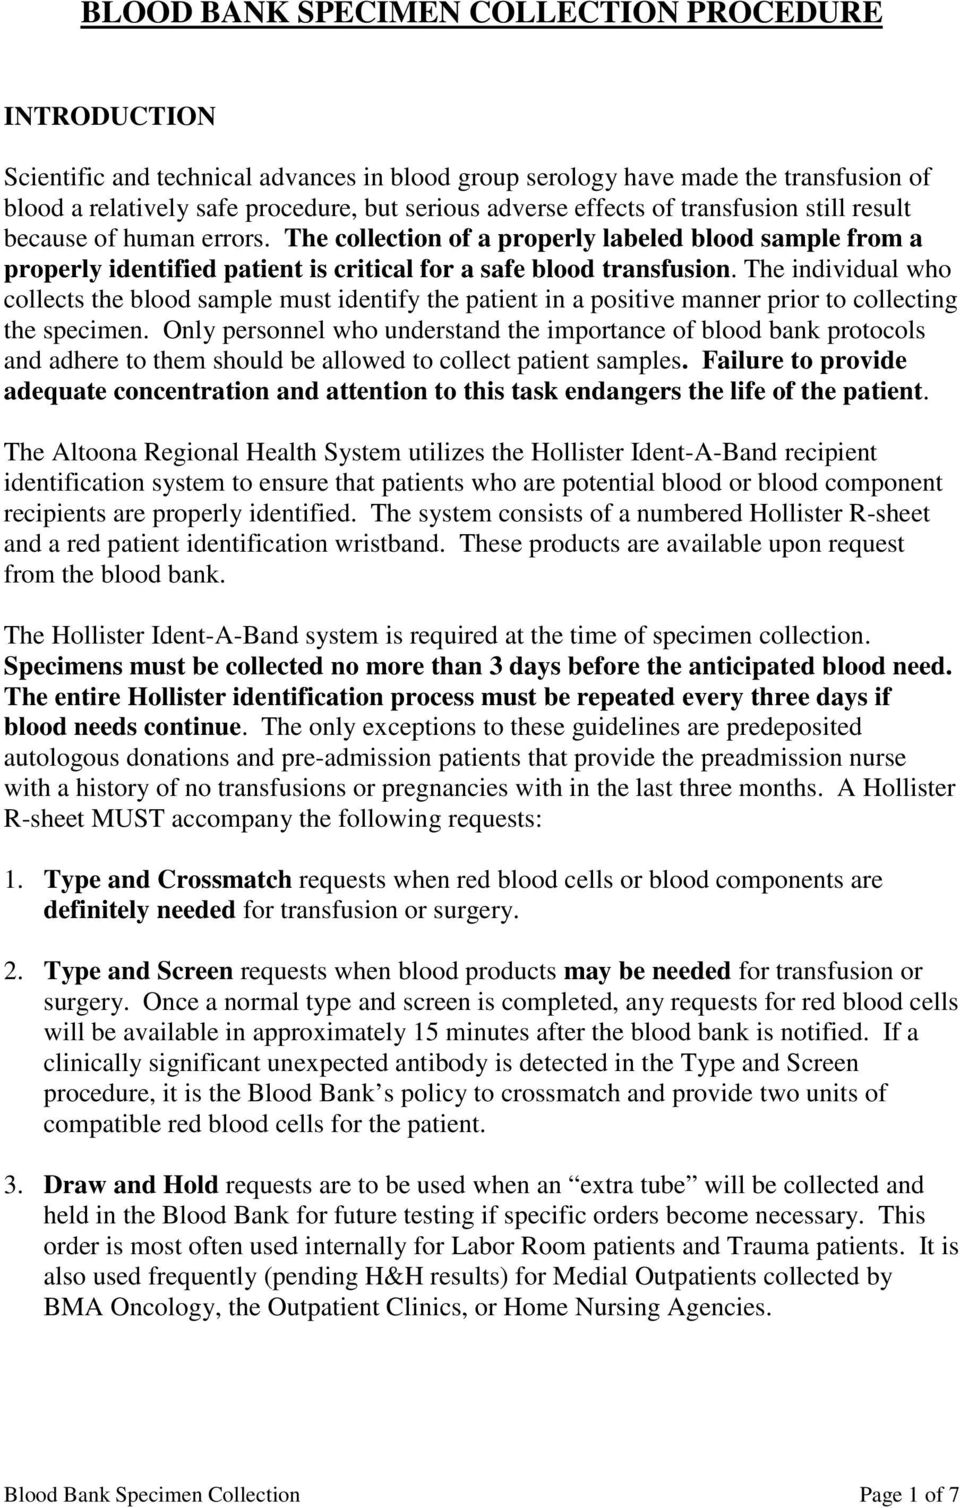 Blood Bank Specimen Collection Procedure Pdf